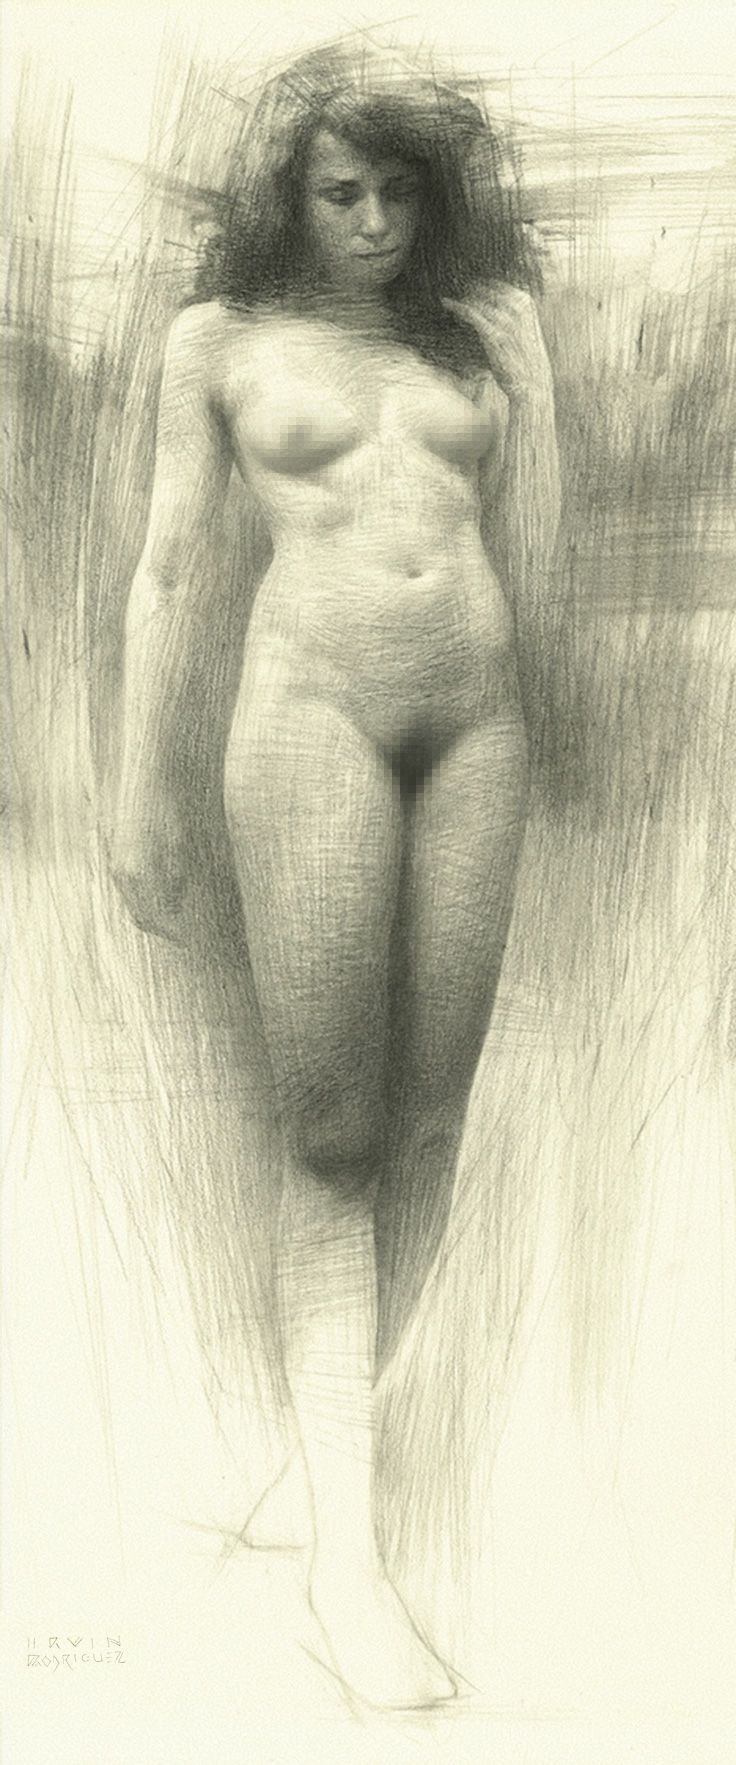 Study for wanderer by irvin rodríguez standing nude female pencil drawing 2015 irvinrodriguez com